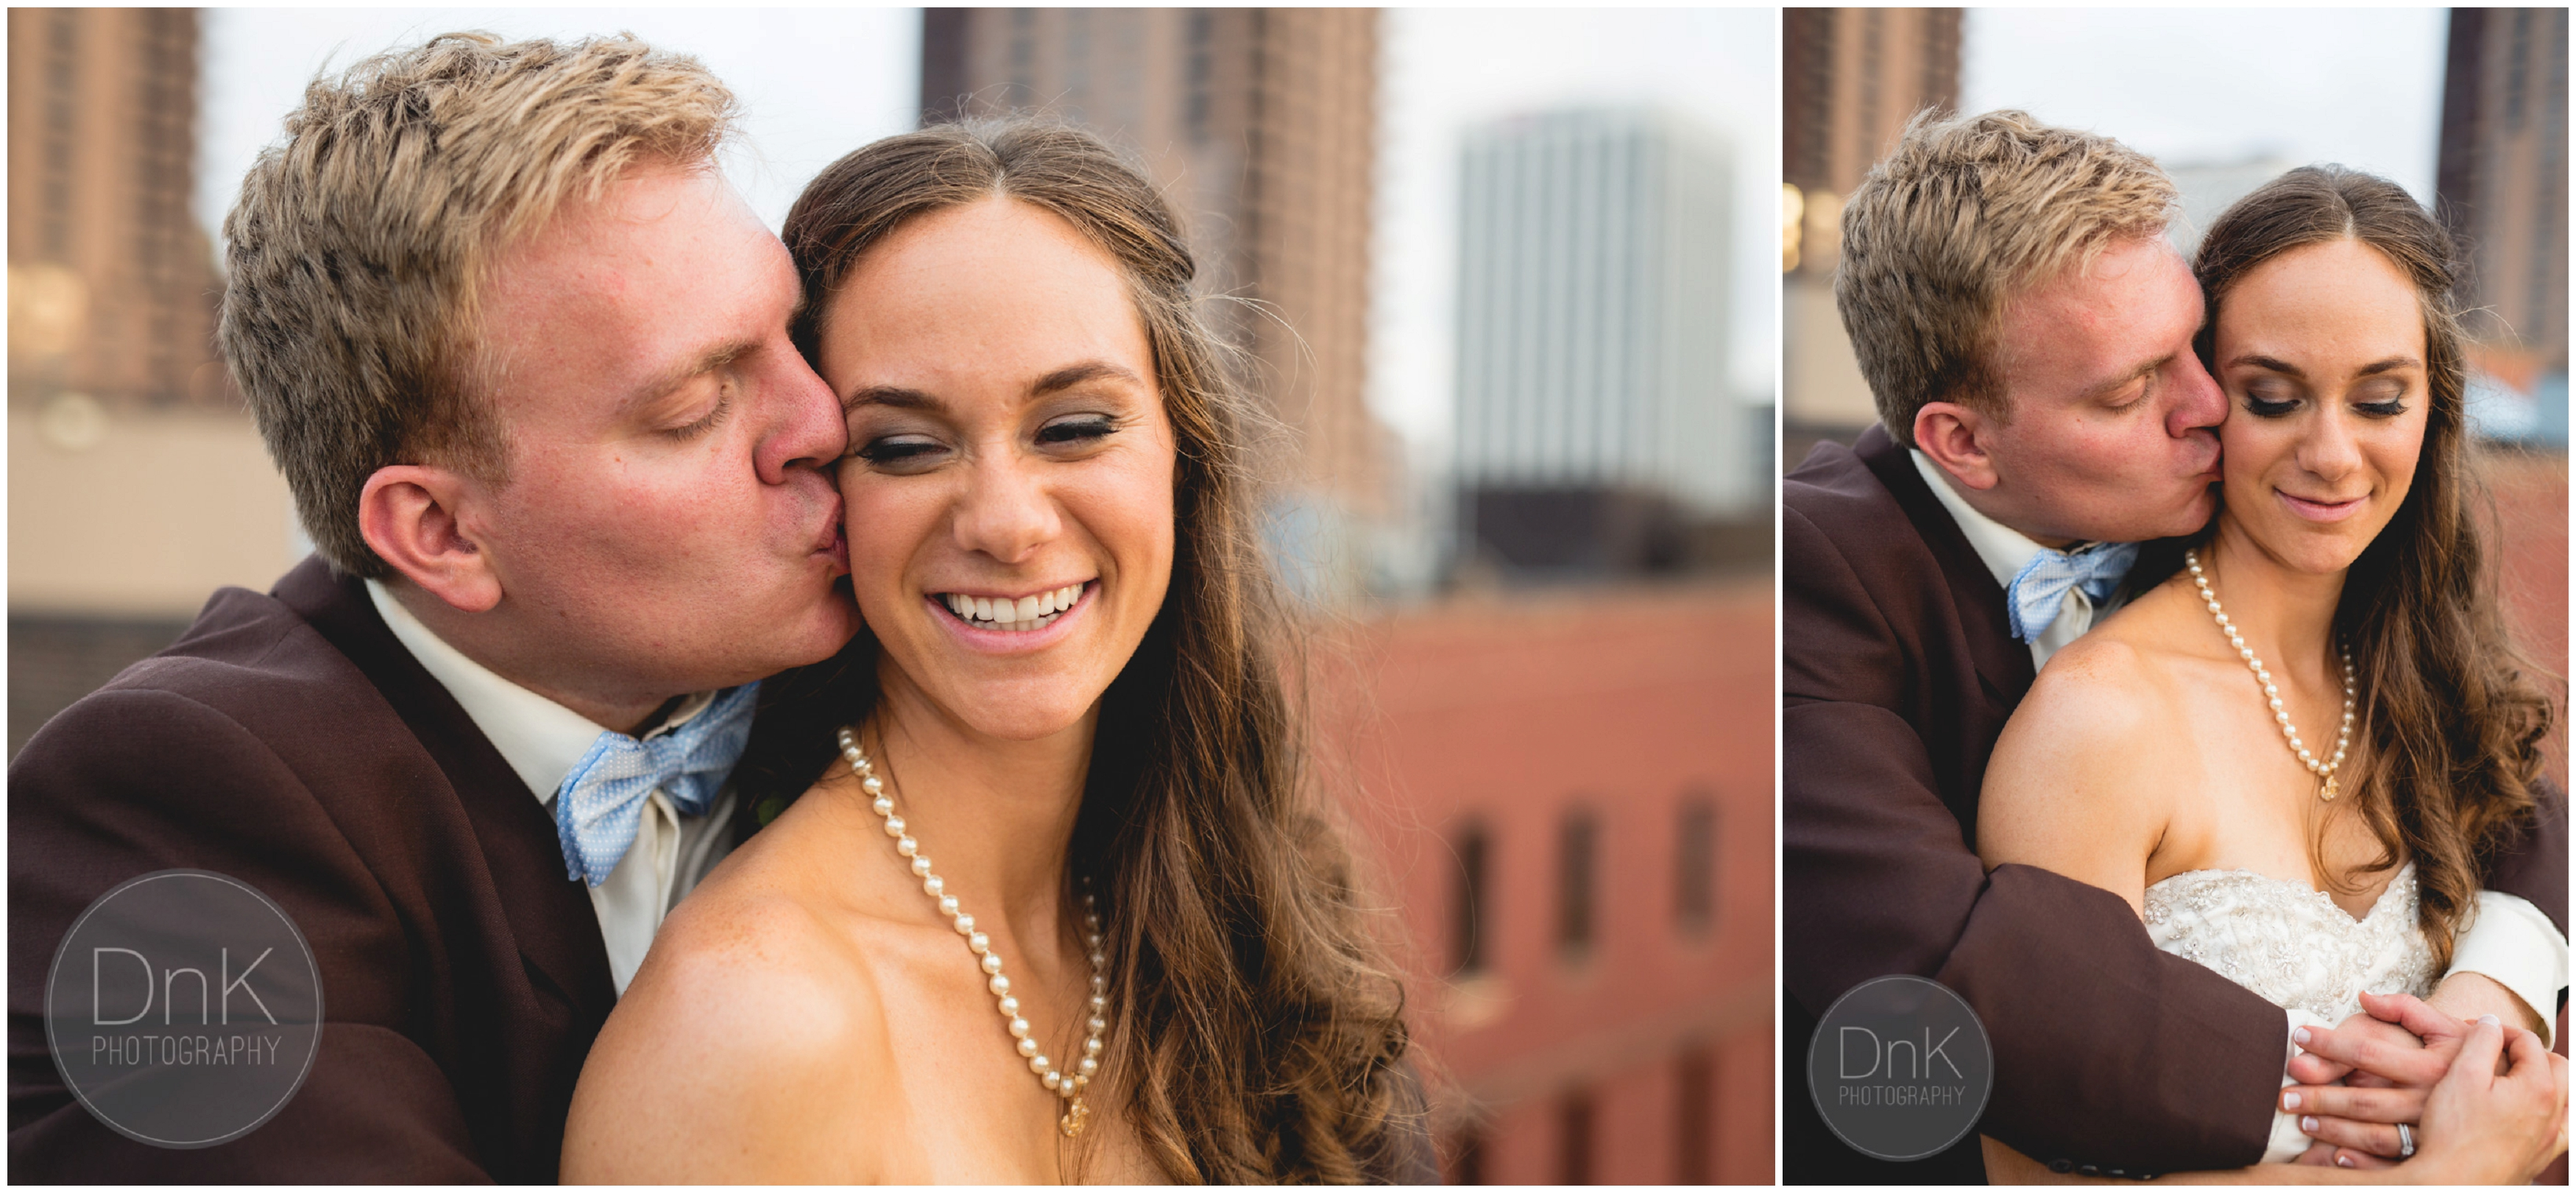 34 - 413 on Wacouta Wedding Pictures Rooftop Wedding Pictures Minneapolis Wedding Photographer